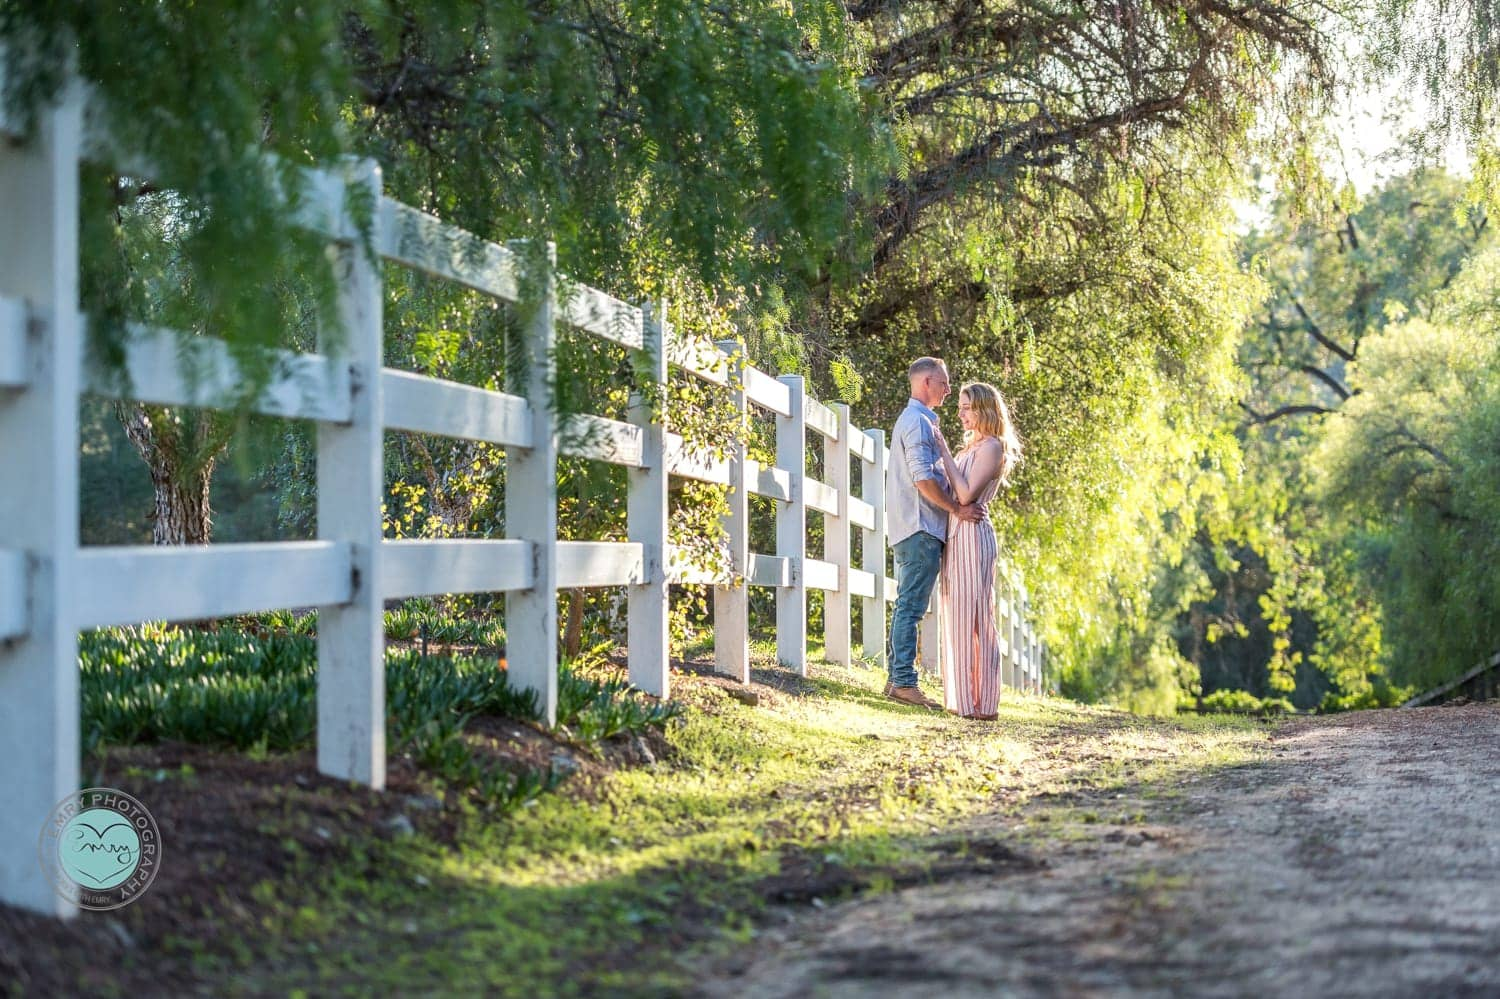 Engagement session on a dirt road with a white fence.